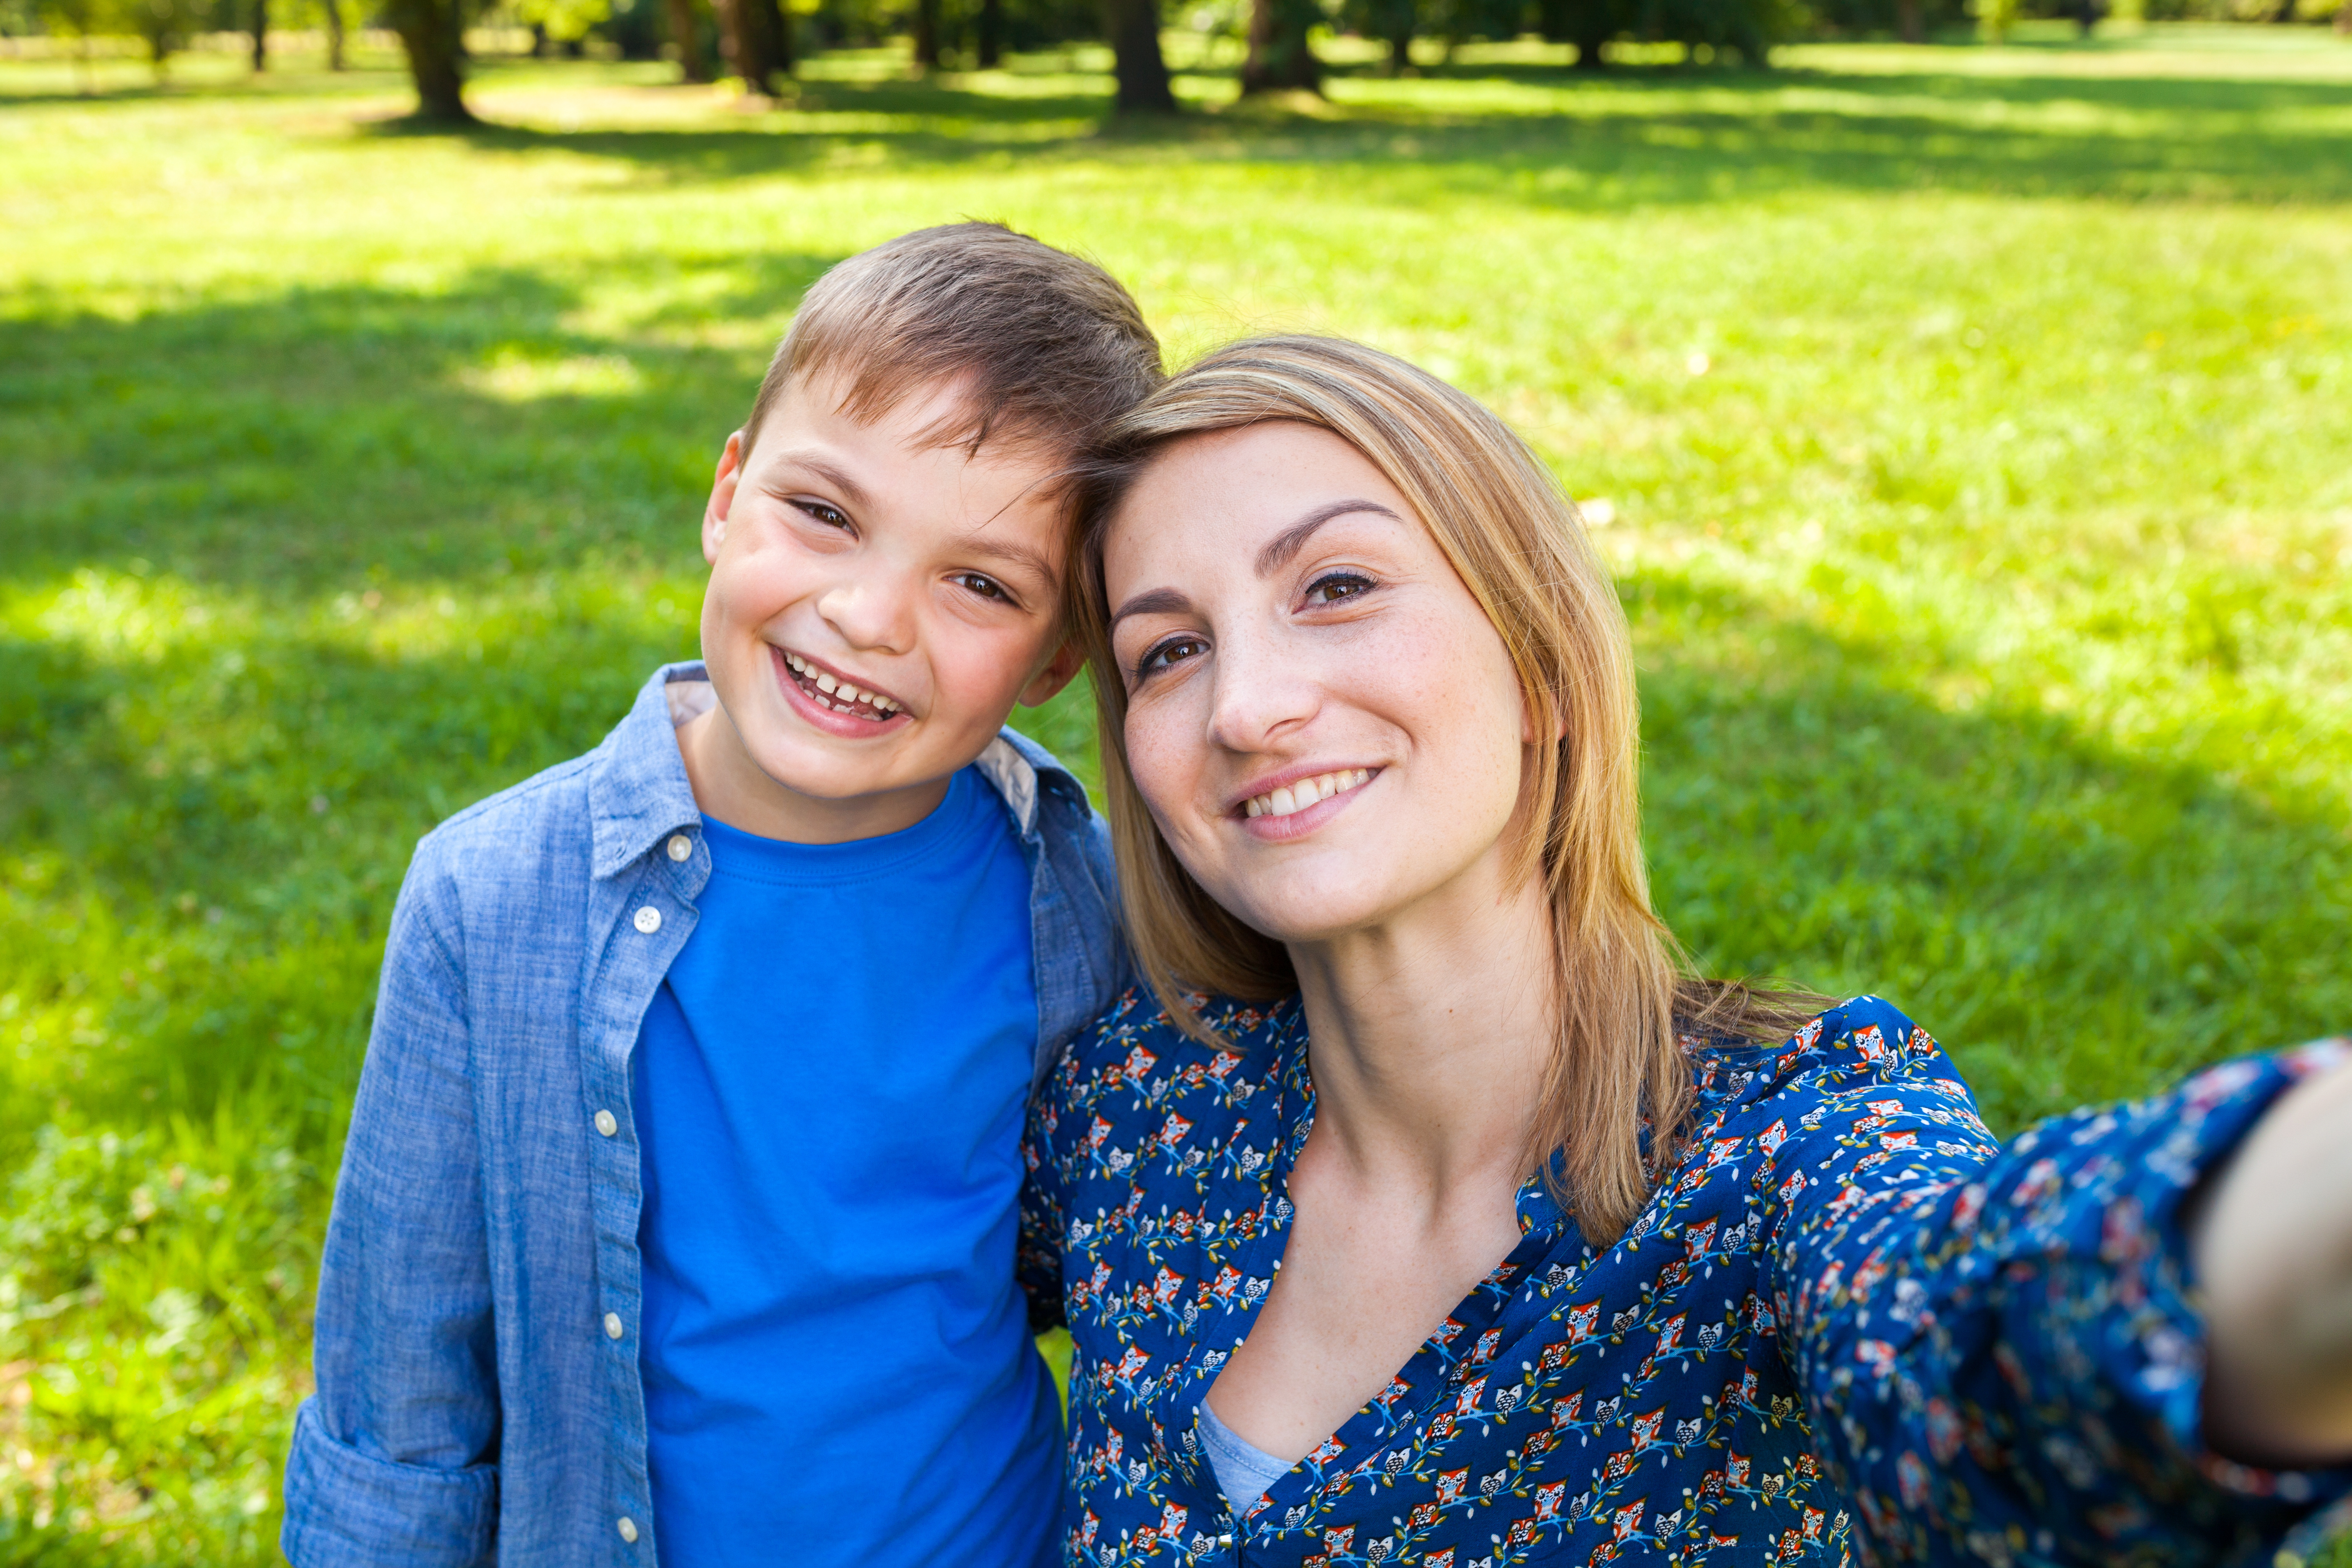 happy Mom and Son, a day together, plans change, going with the flow, going to the park